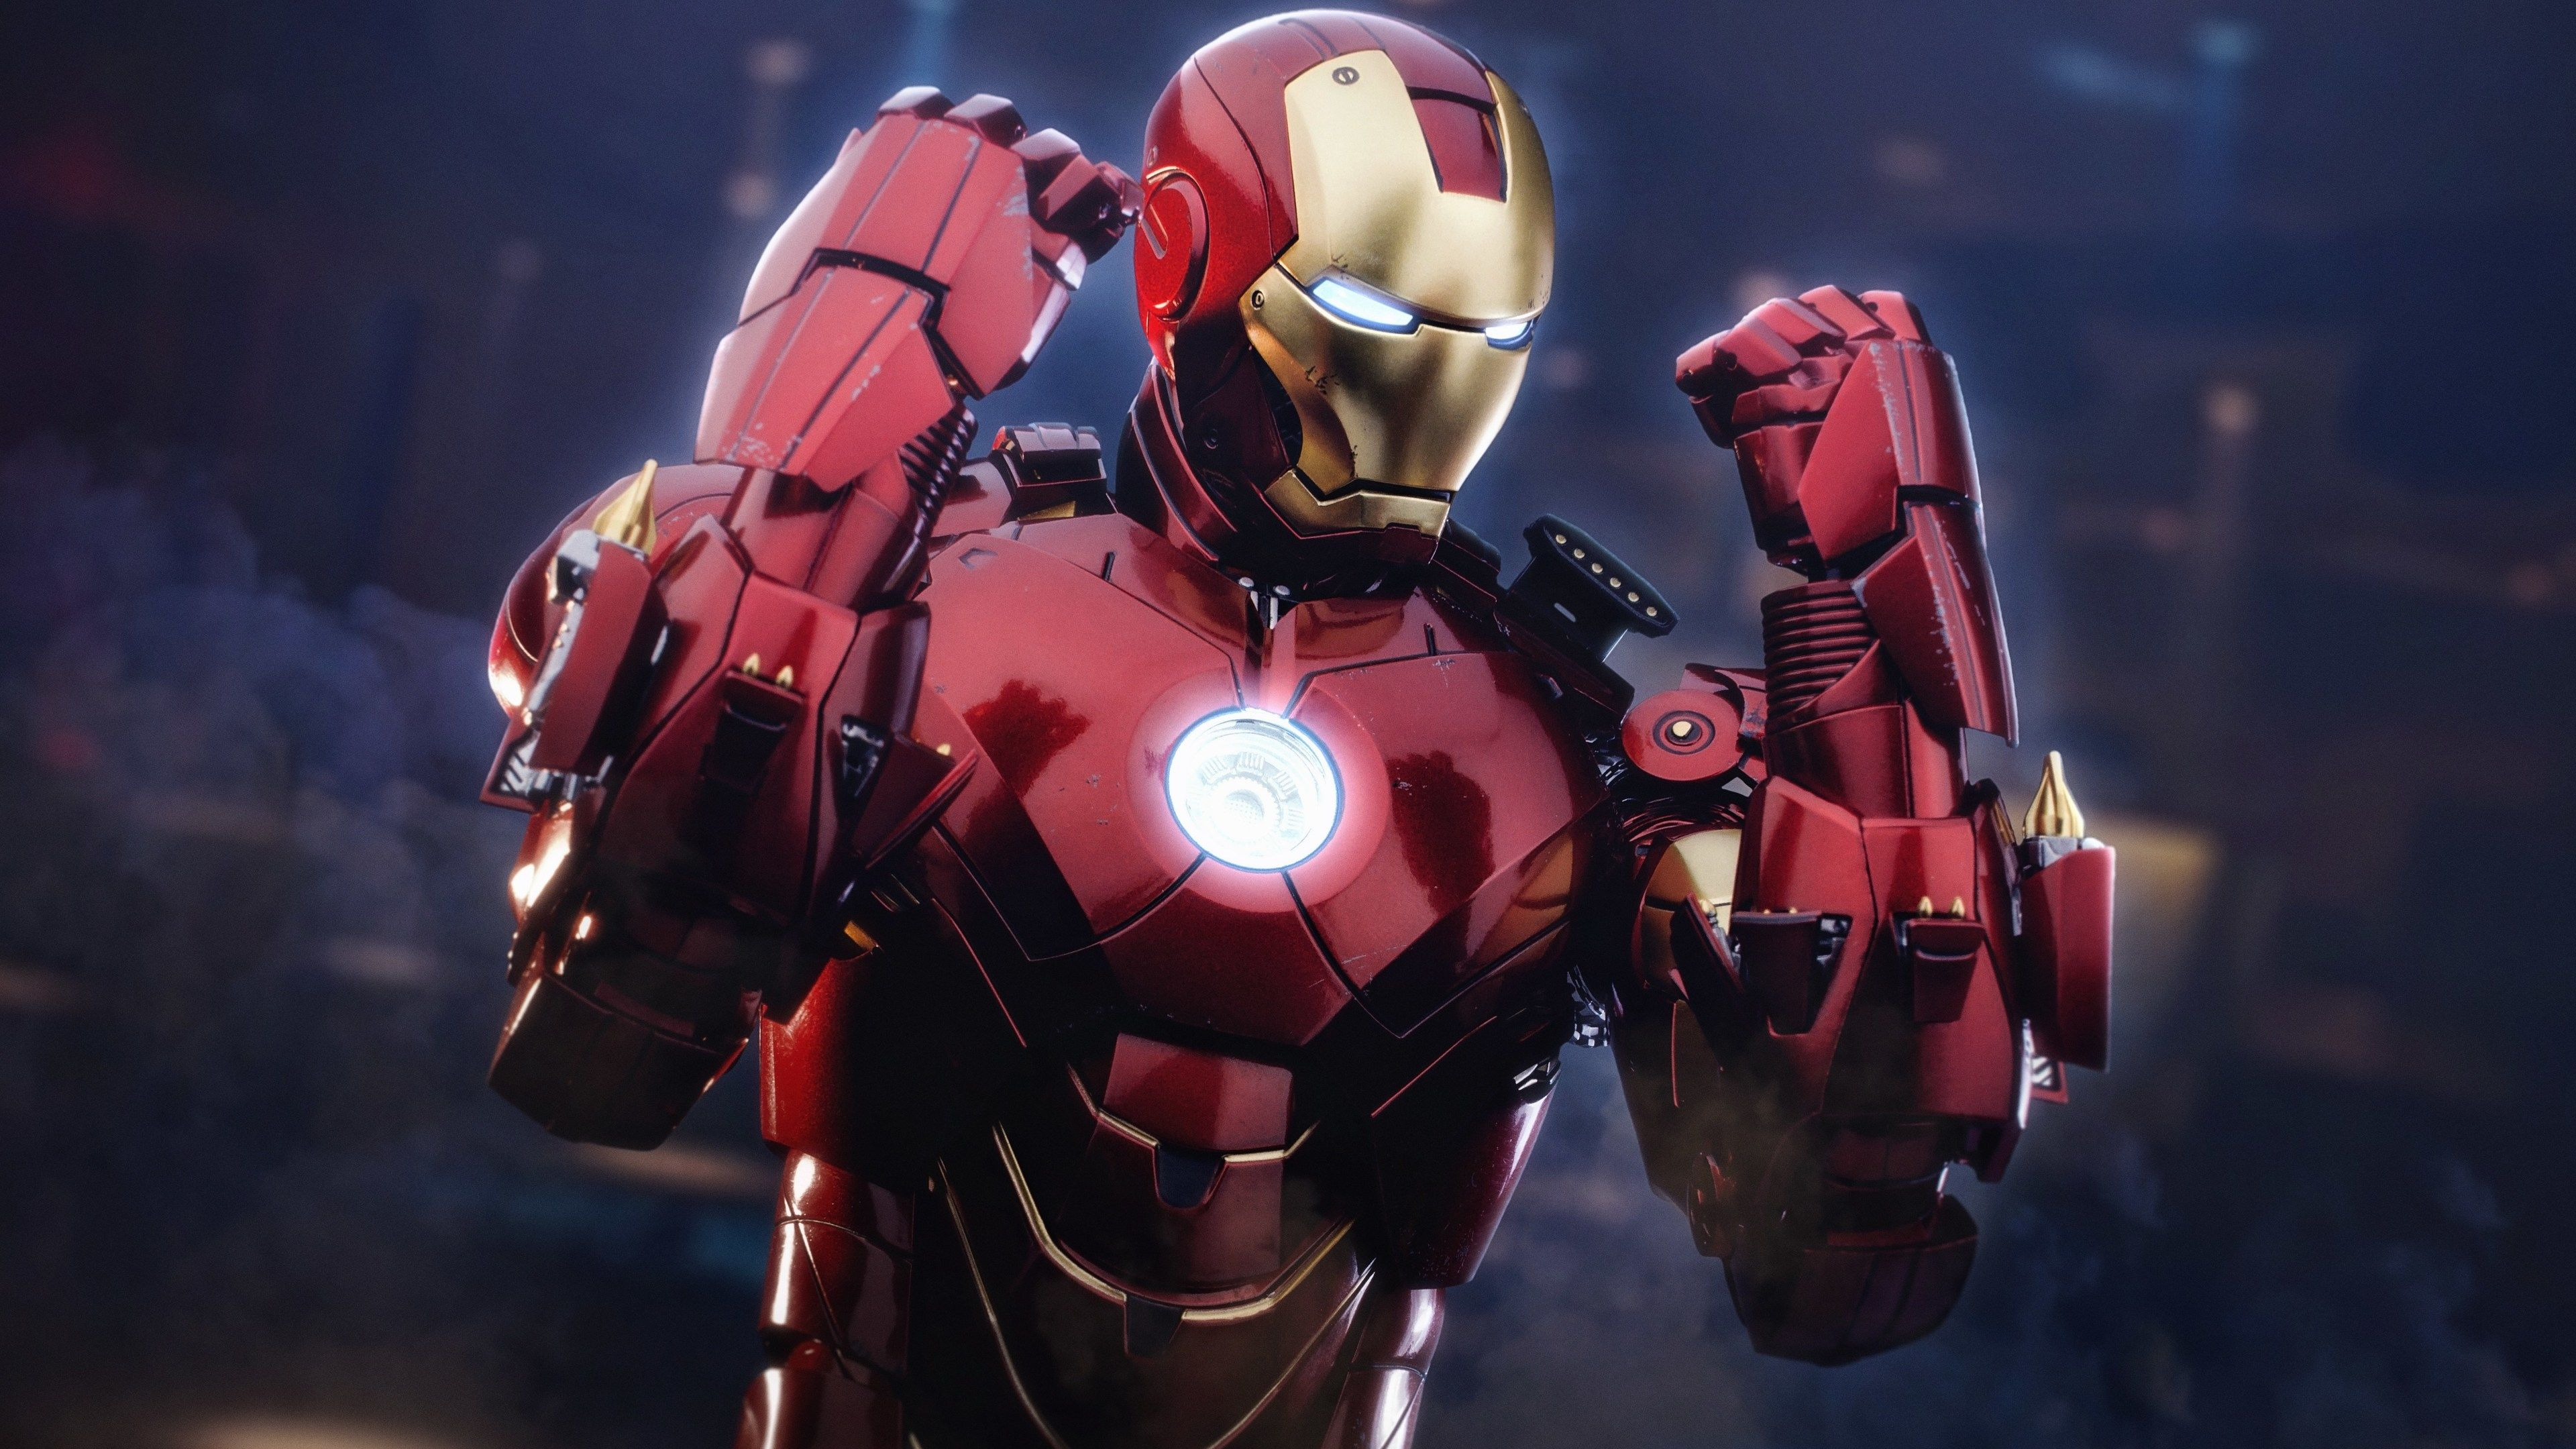 Iron Man Mark 4 Suit 5k Superheroes Wallpapers Iron Man Wallpapers Hd Wallpapers 5k Wallpapers 4k Wallpapers Iron Man Wallpaper Iron Man Iron Man Suit